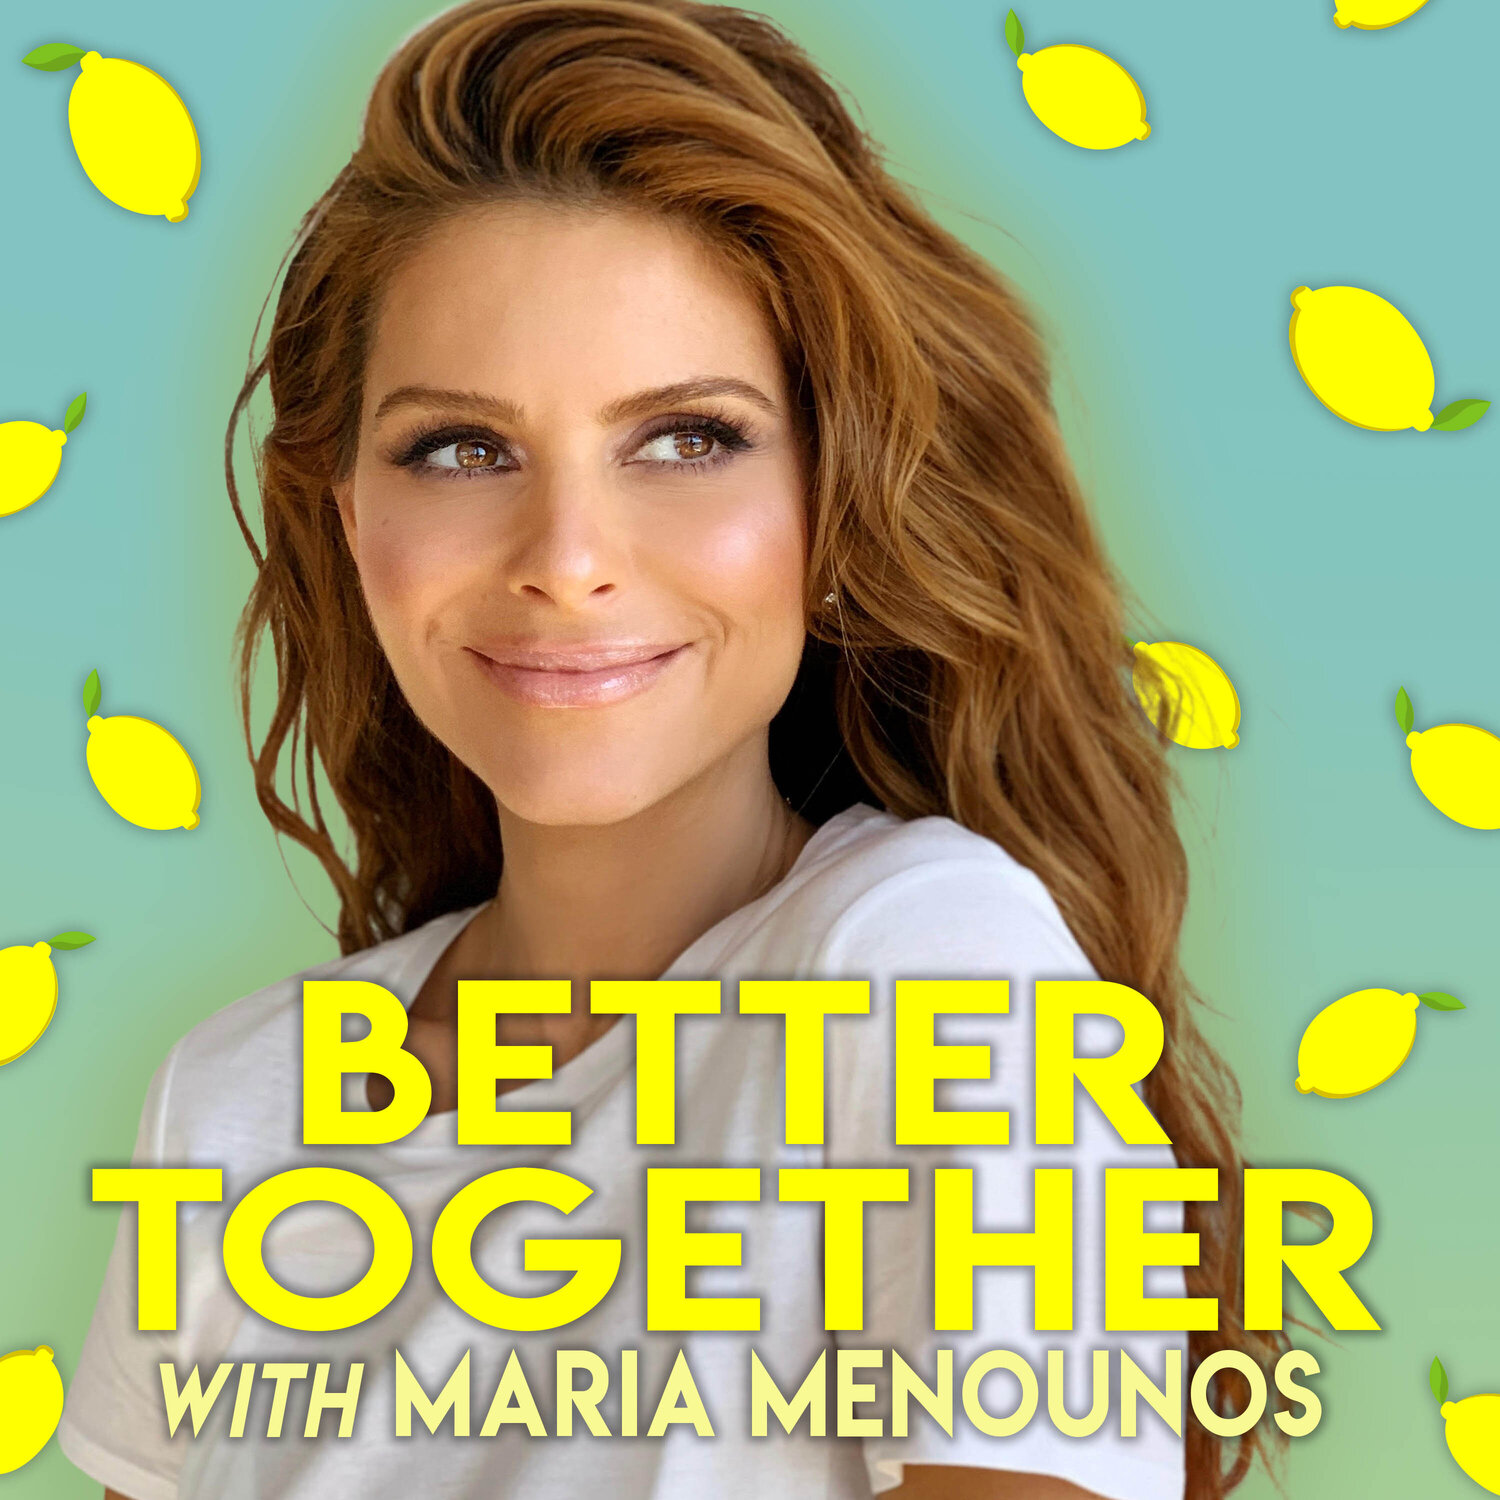 Better Together: GSTV and Maria Menounos Launch Partnership To Bring New Lifestyle Content to National Video Network — Press Releases — GSTV.com